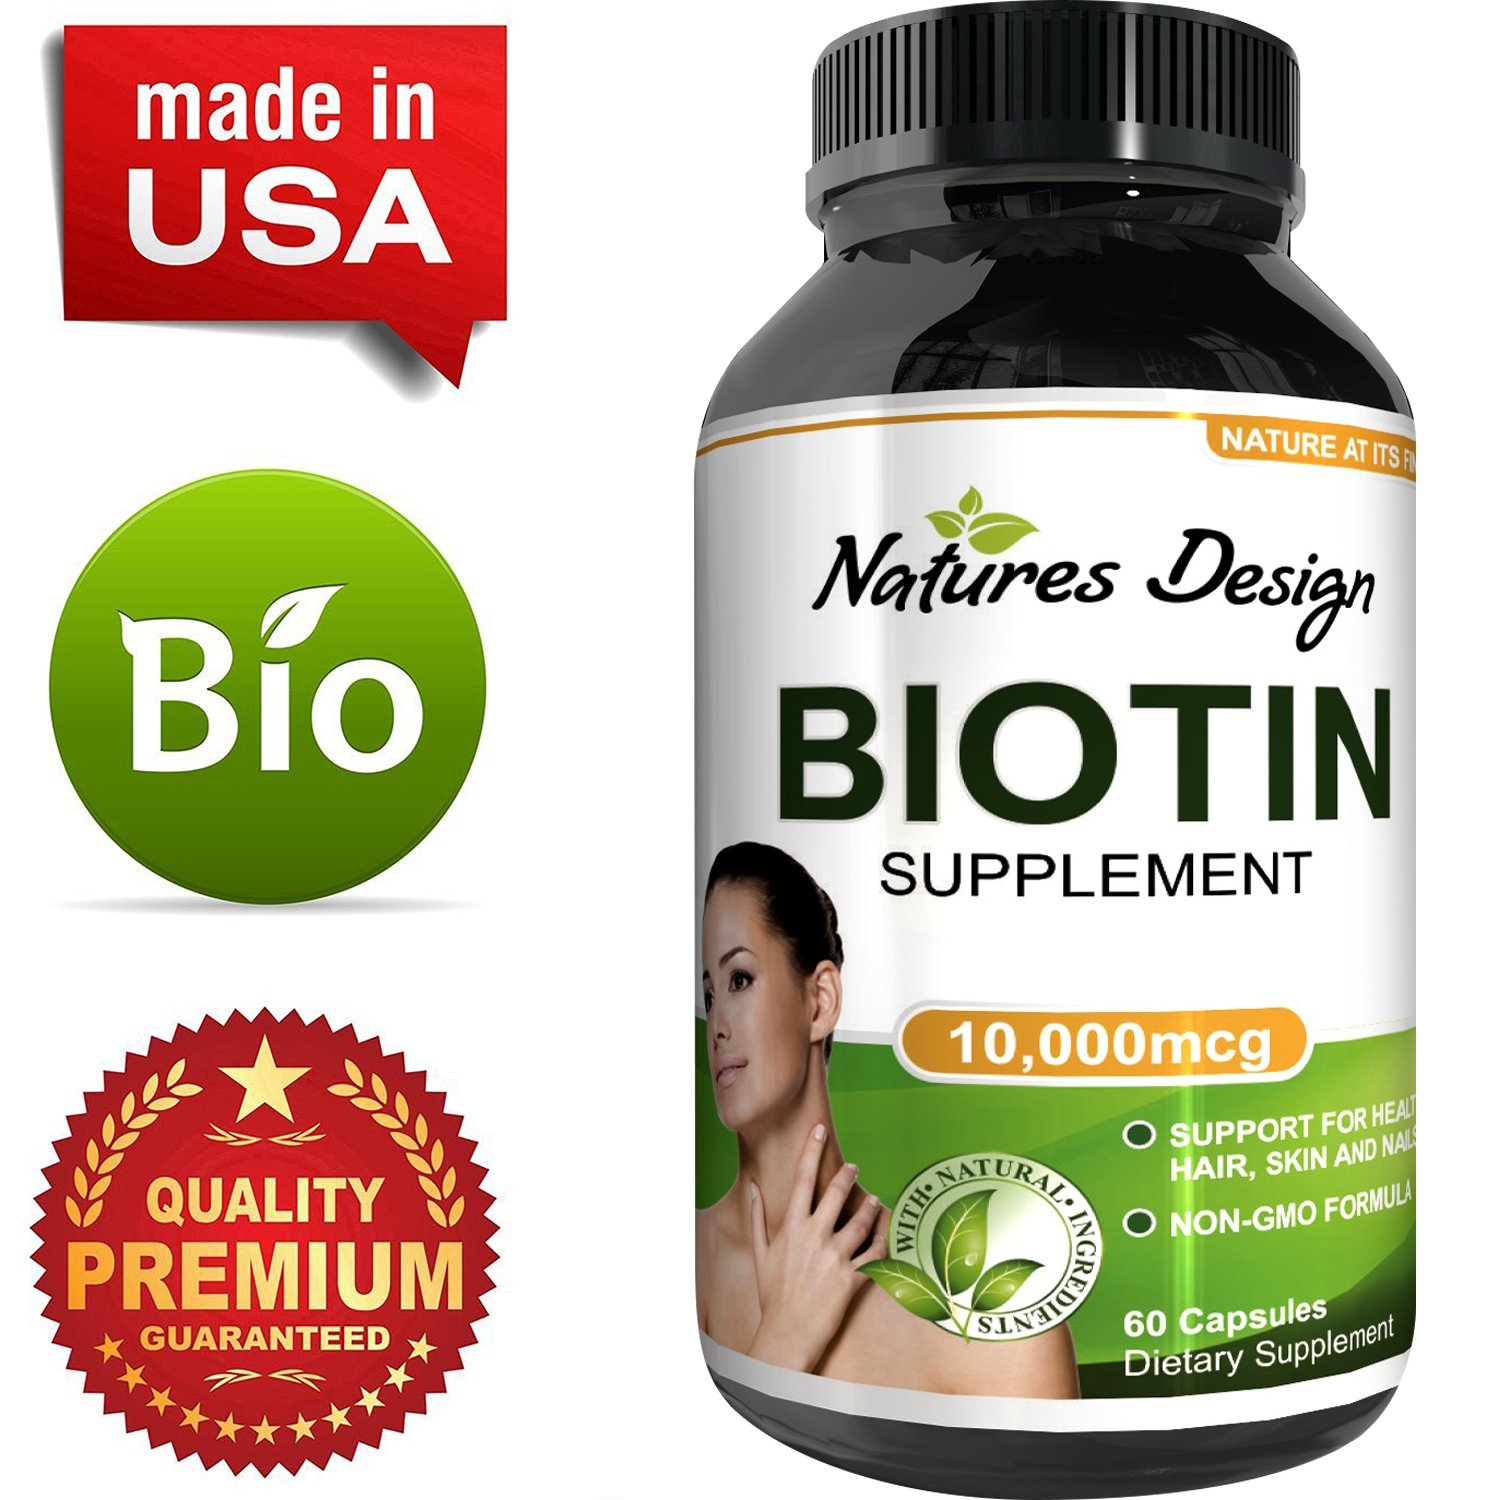 Best Biotin Pure Supplement - Natural Pills for Hair Nail and Skin Health - Potent Vitamins for Skin Care and Reduce Hair Loss - Great For Metabolism and Digestion For Men & Women by Natures Design